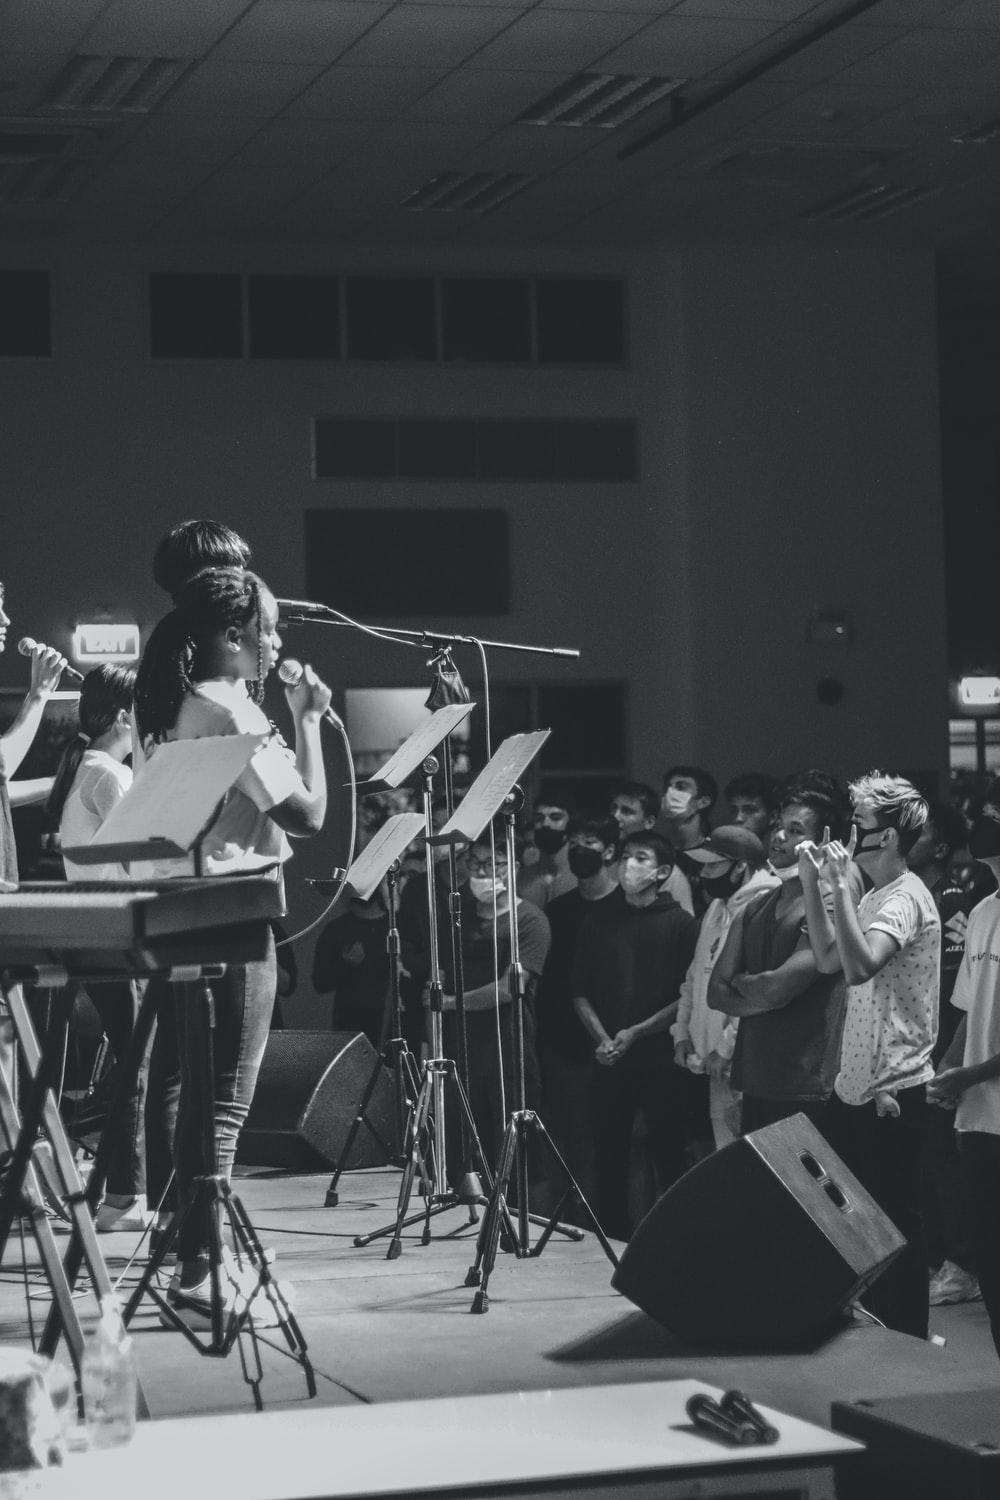 grayscale photo of band performing on stage